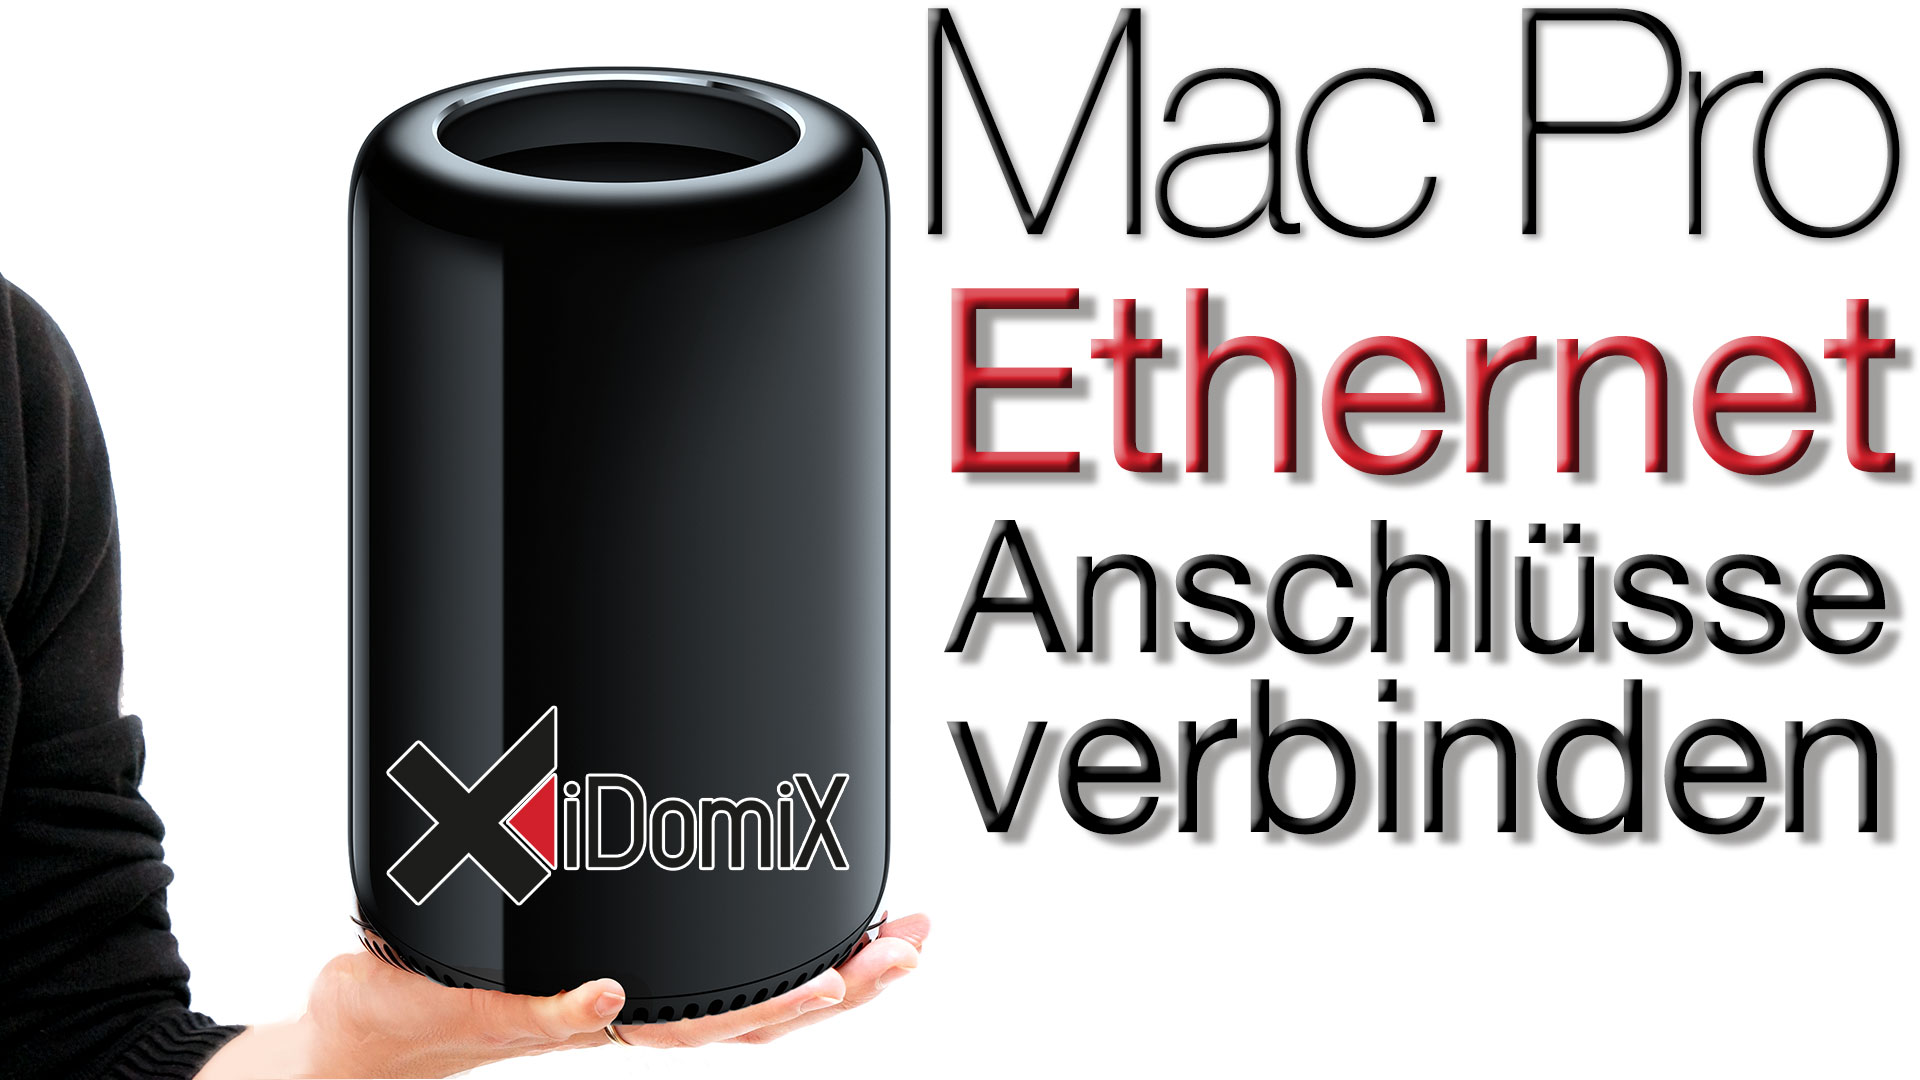 mac pro 2013 ethernet anschl sse verbinden link aggregation idomix. Black Bedroom Furniture Sets. Home Design Ideas